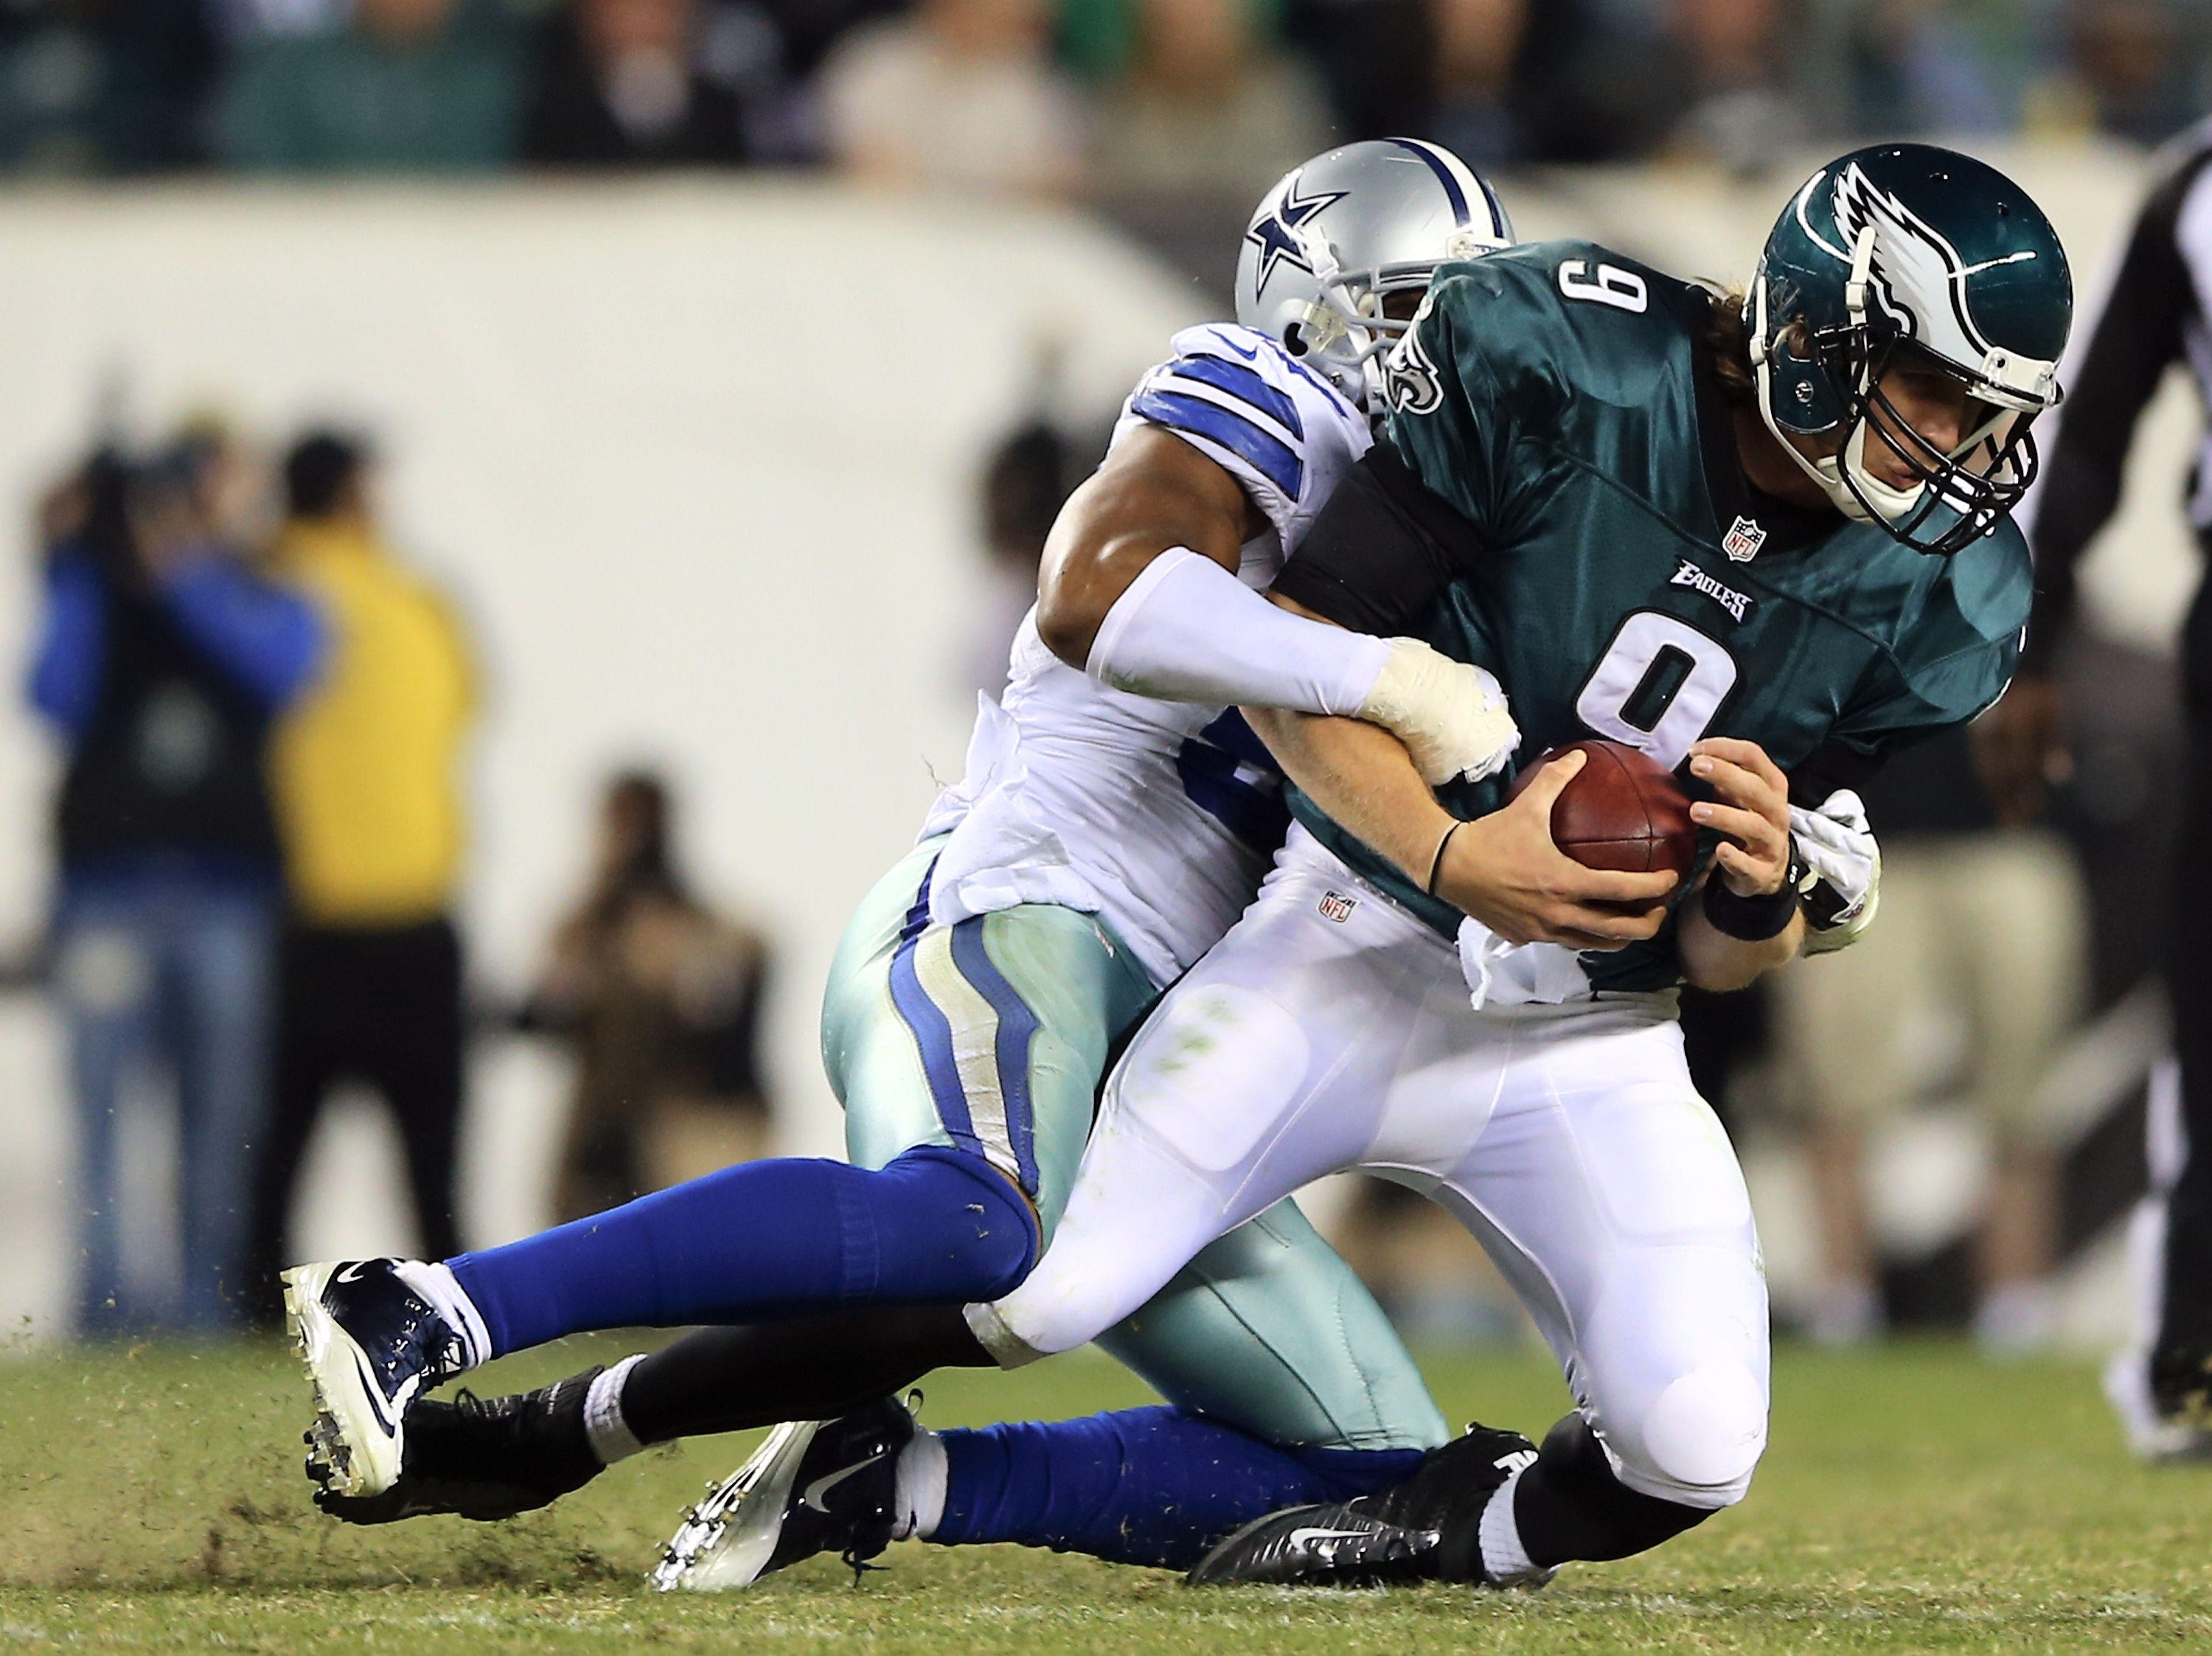 Eagles rookie QB Nick Foles is sacked by Victor Butler in Sunday's loss to the Cowboys. (Getty Images)